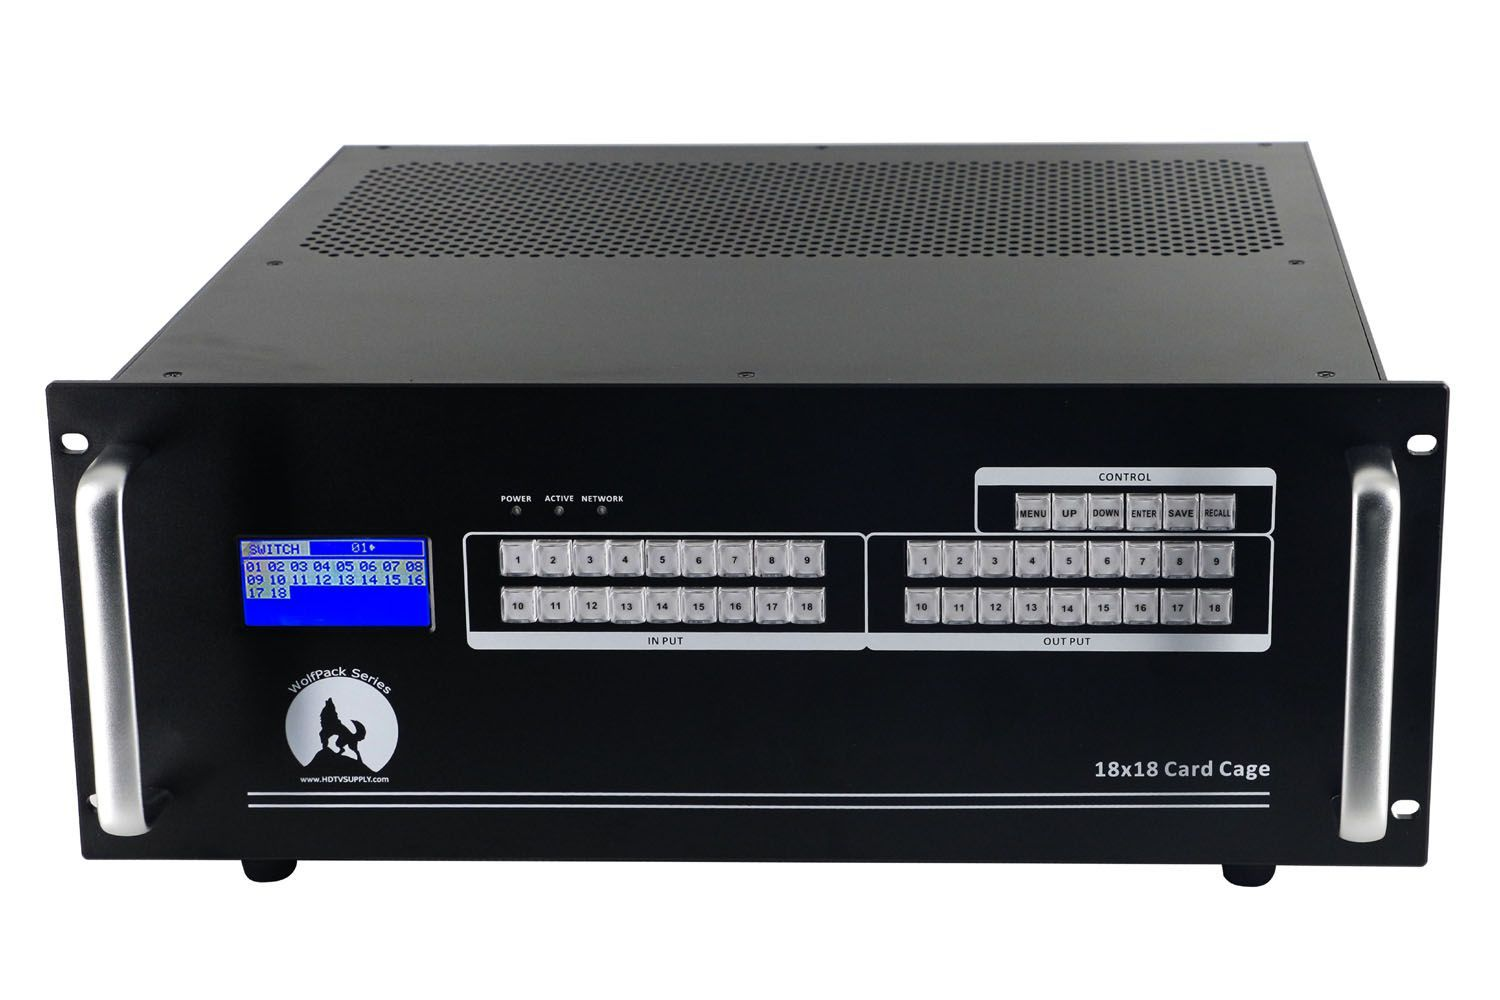 16x6 HDMI Matrix Switch with Video Wall Processor